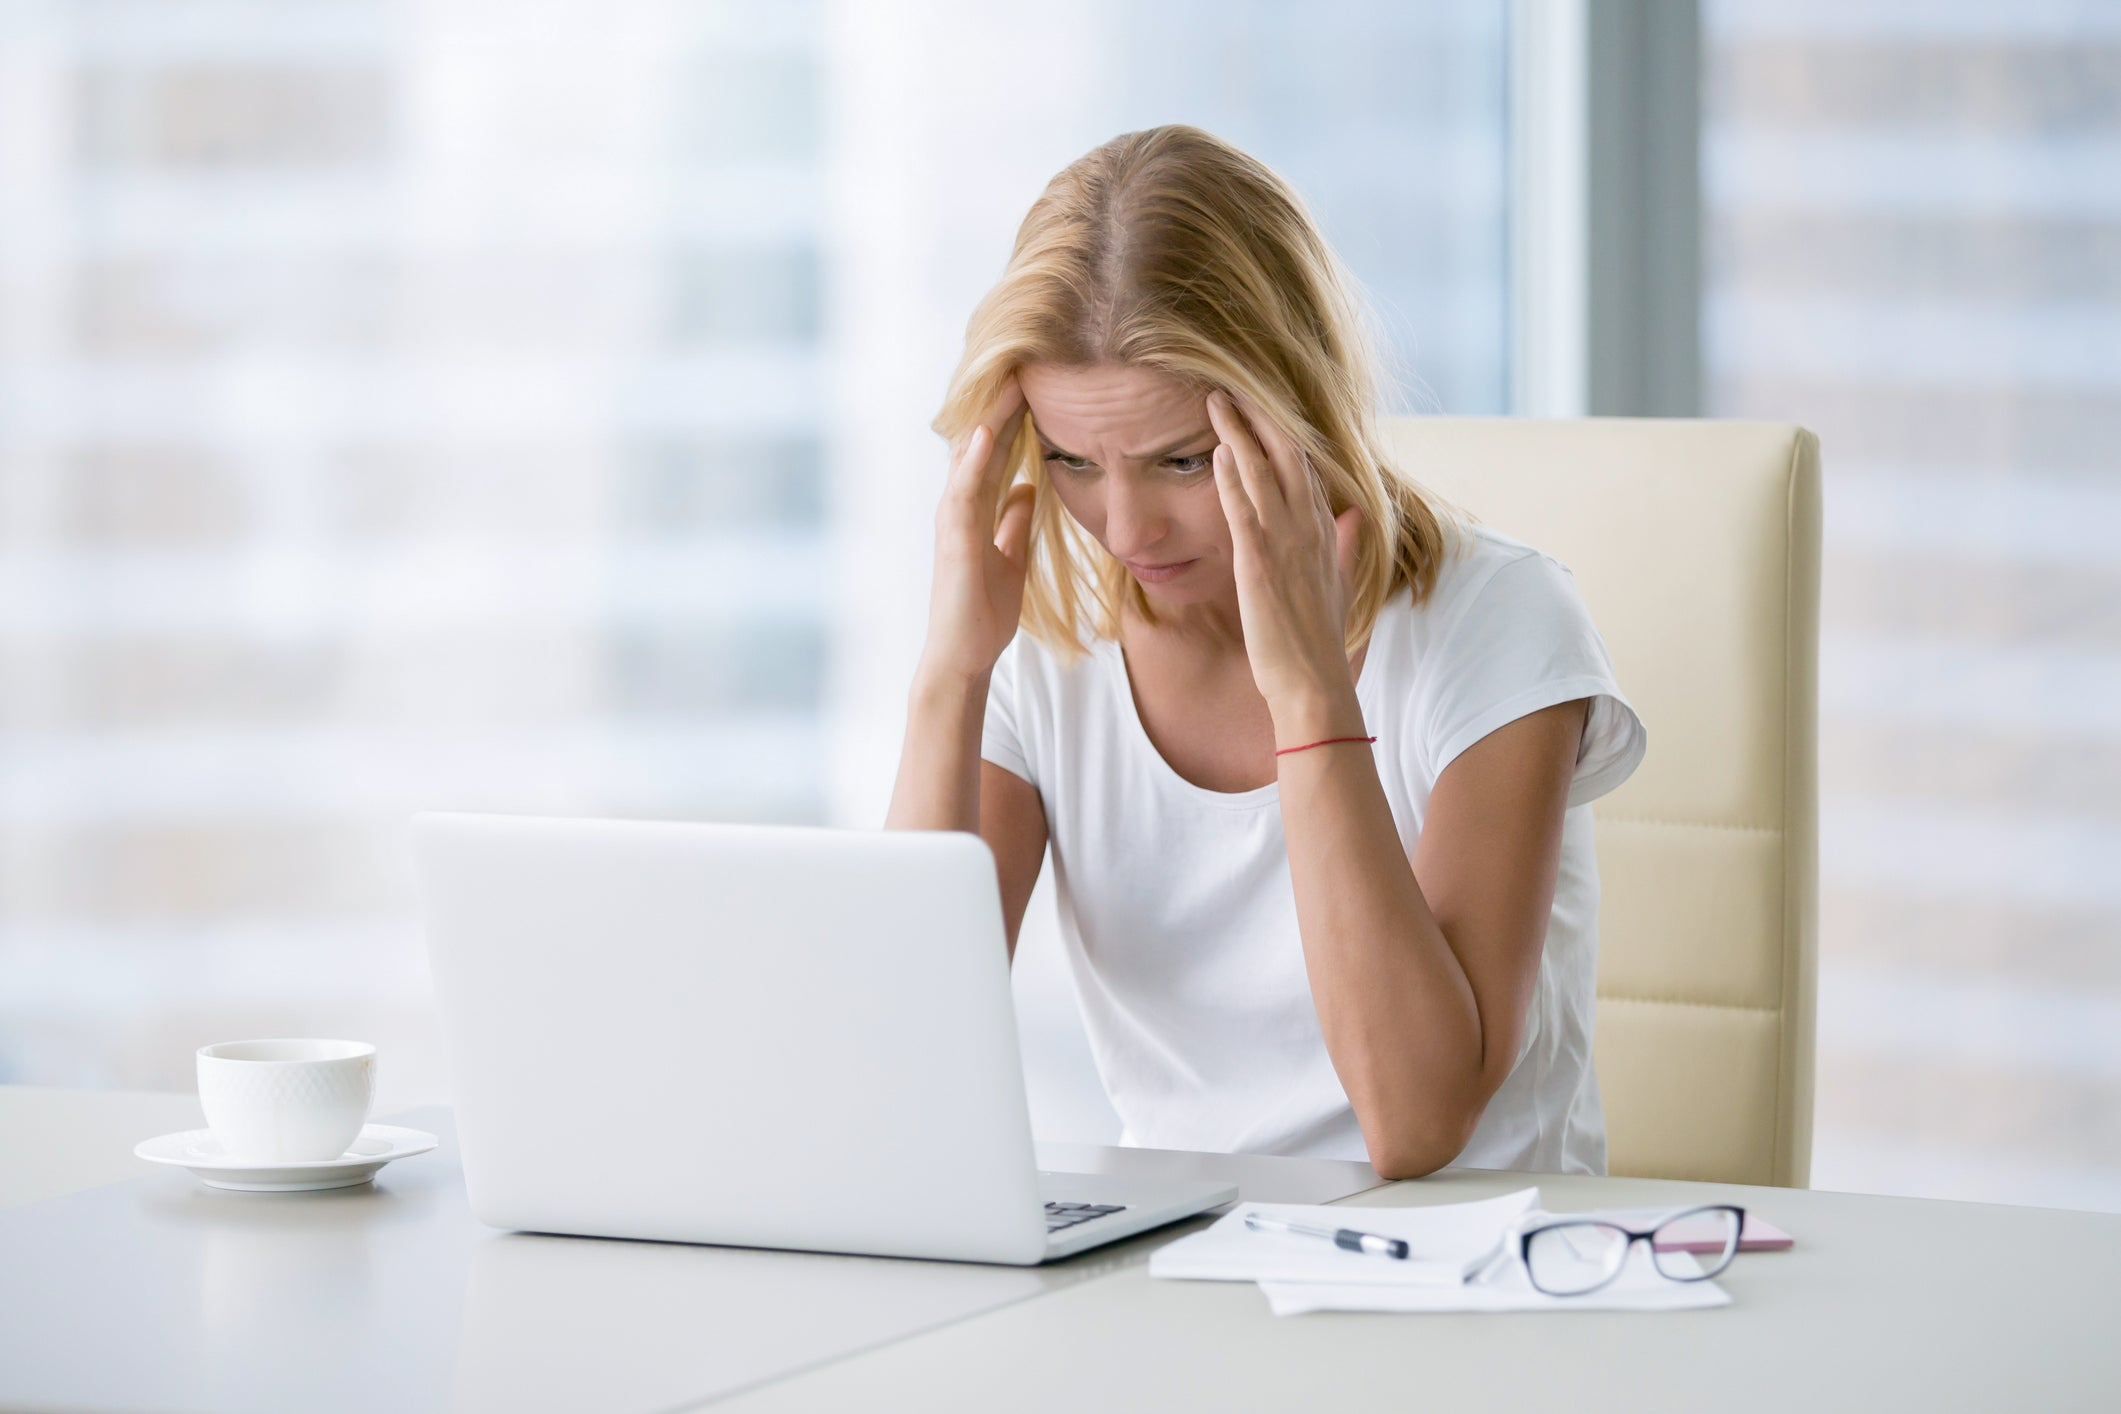 A woman in pain looking at a computer screen.